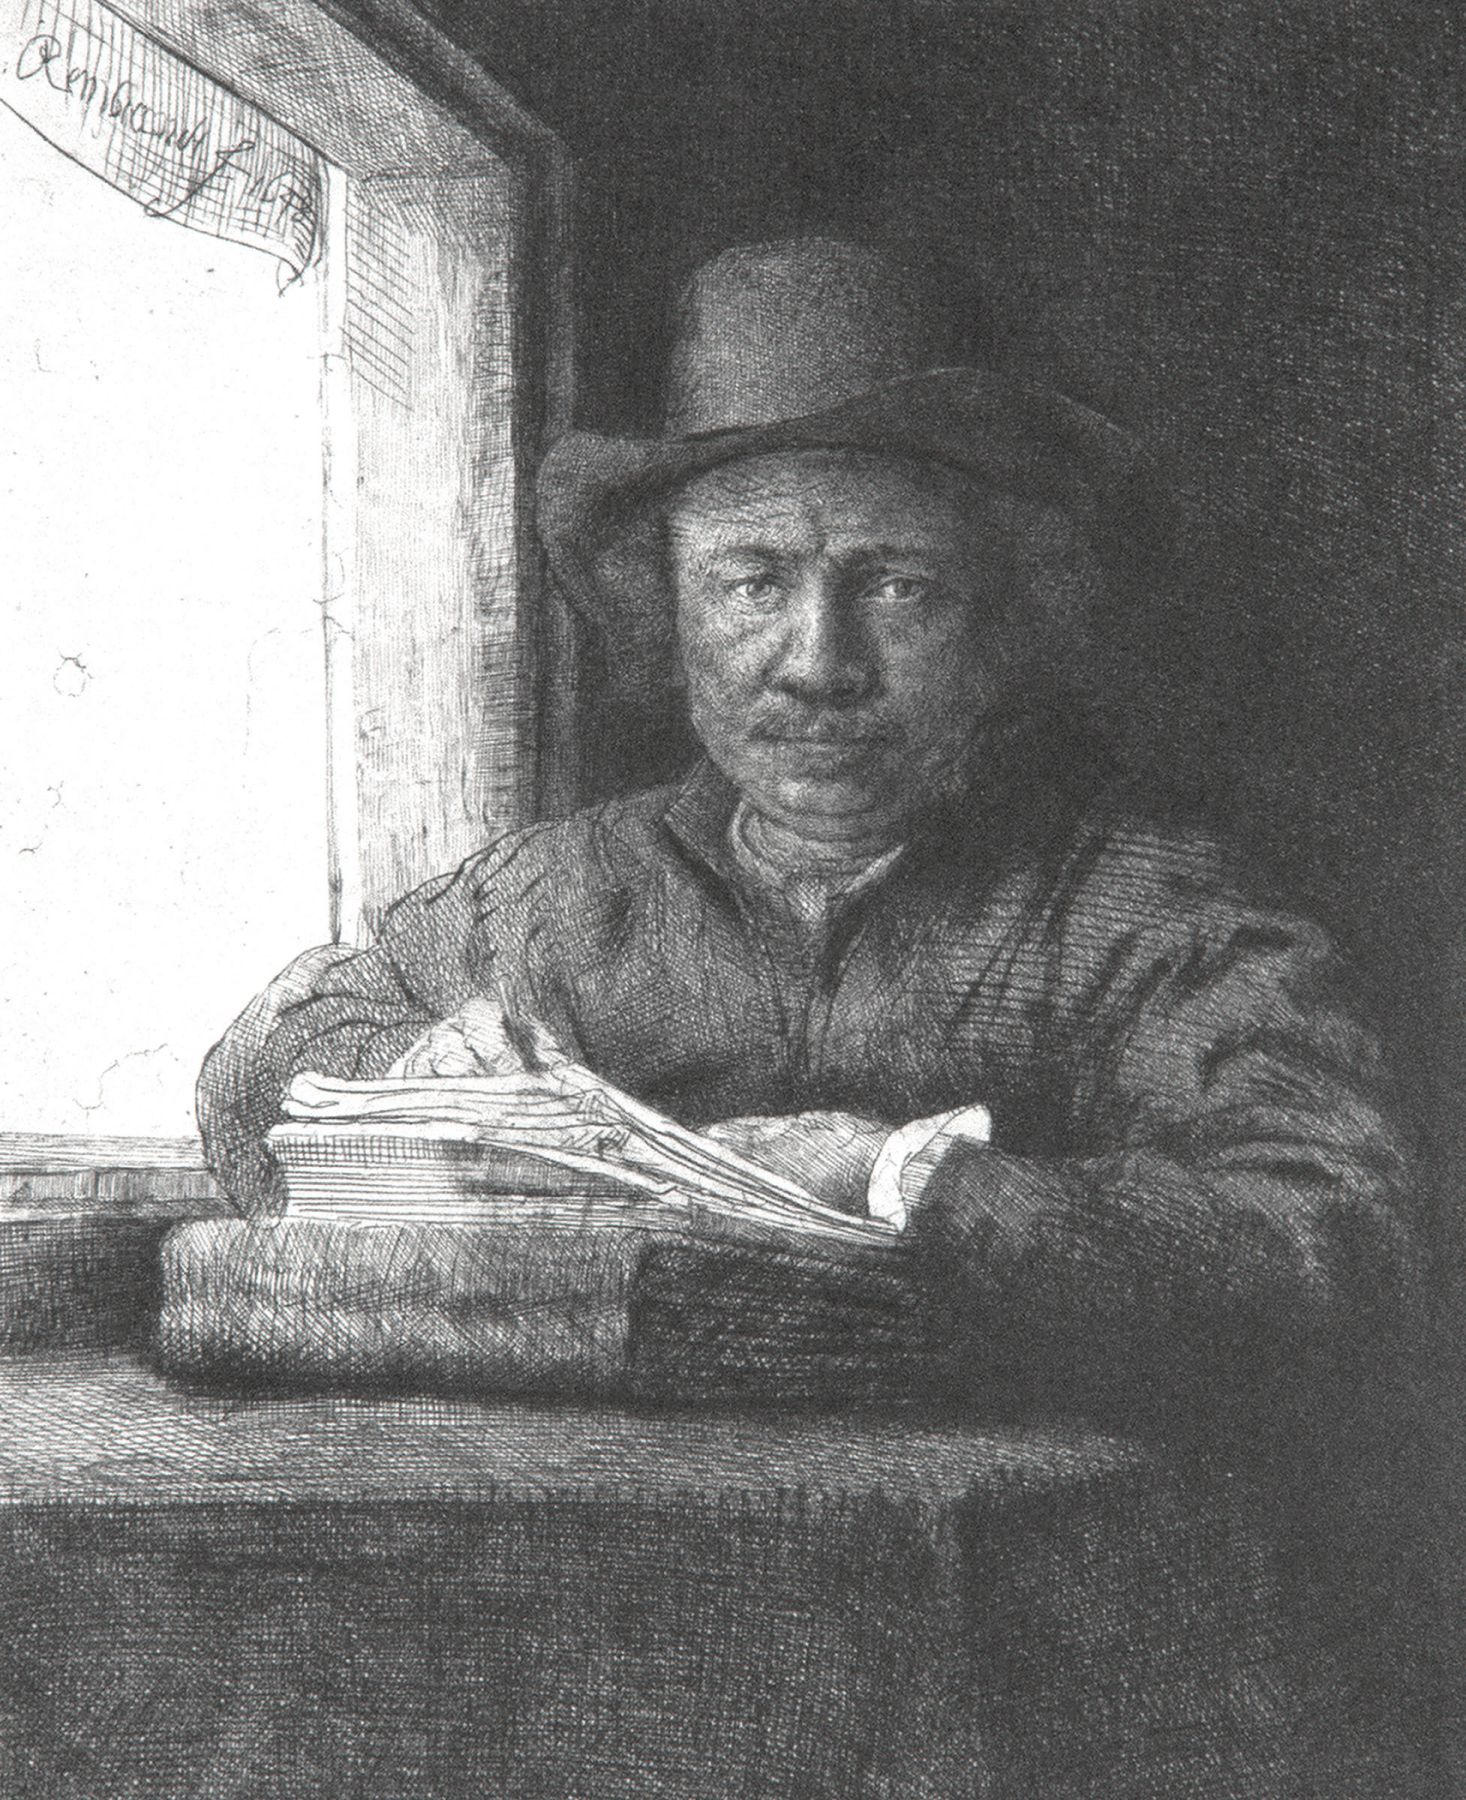 Rembrandt - Self-Portrait Drawing at a Window